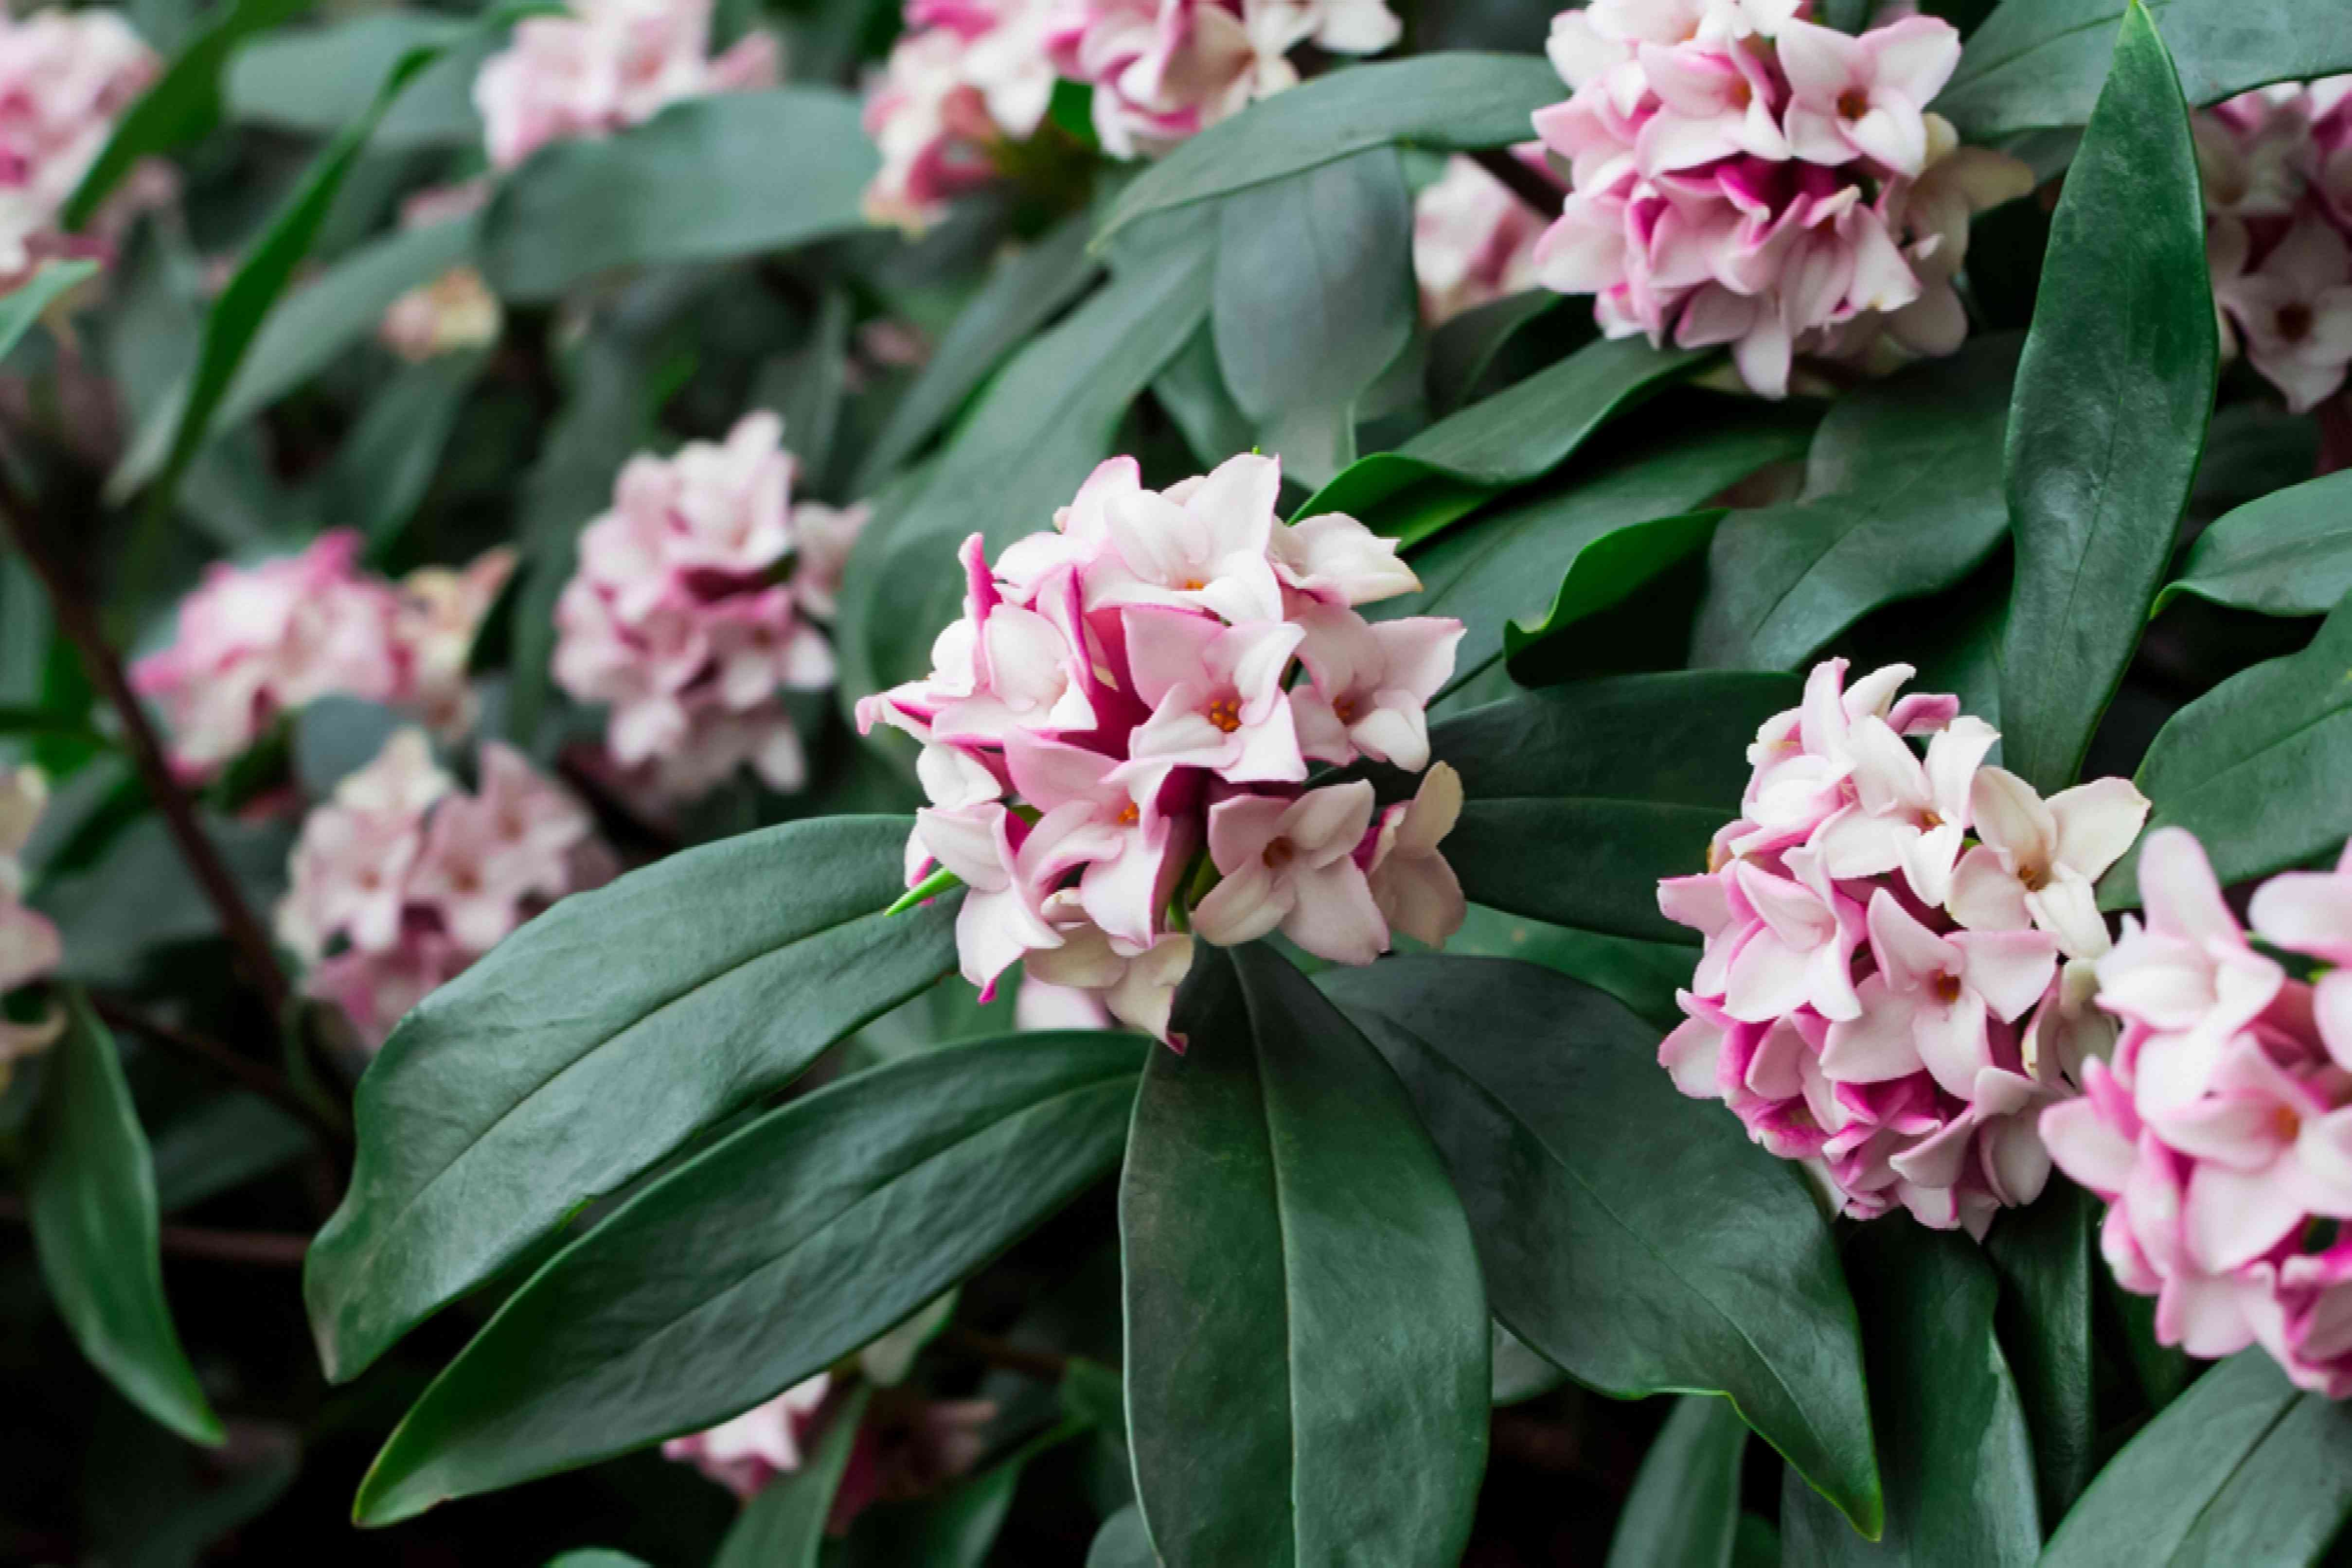 Daphne shrub with with and pink flowers